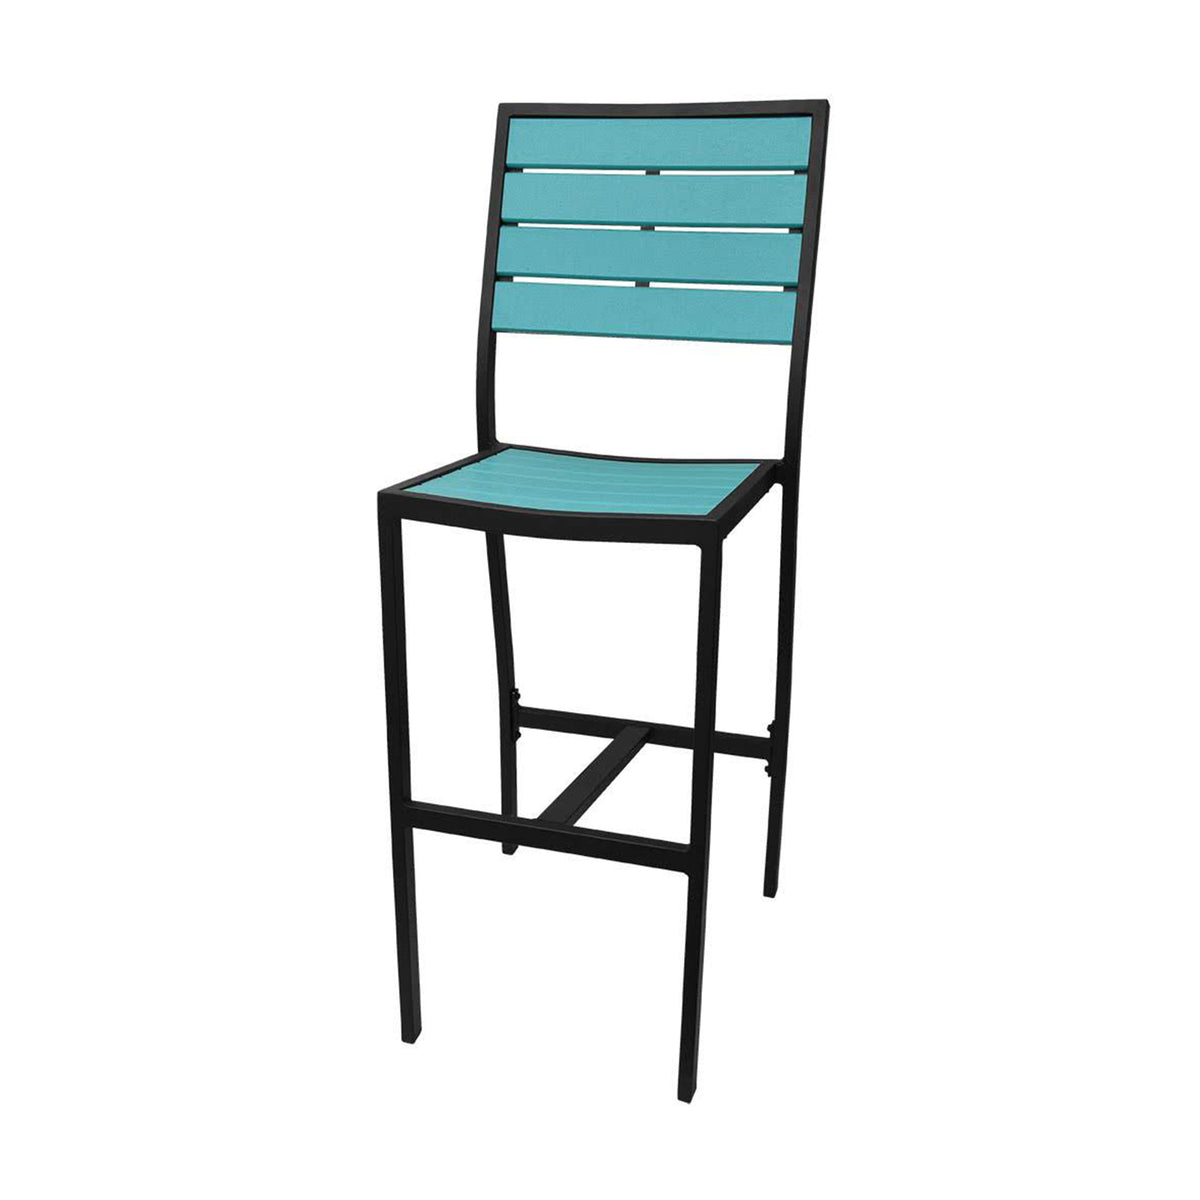 Source Furniture Source Furniture Napa Easton Bar Side Chair Bar Side Chair - Rattan Imports